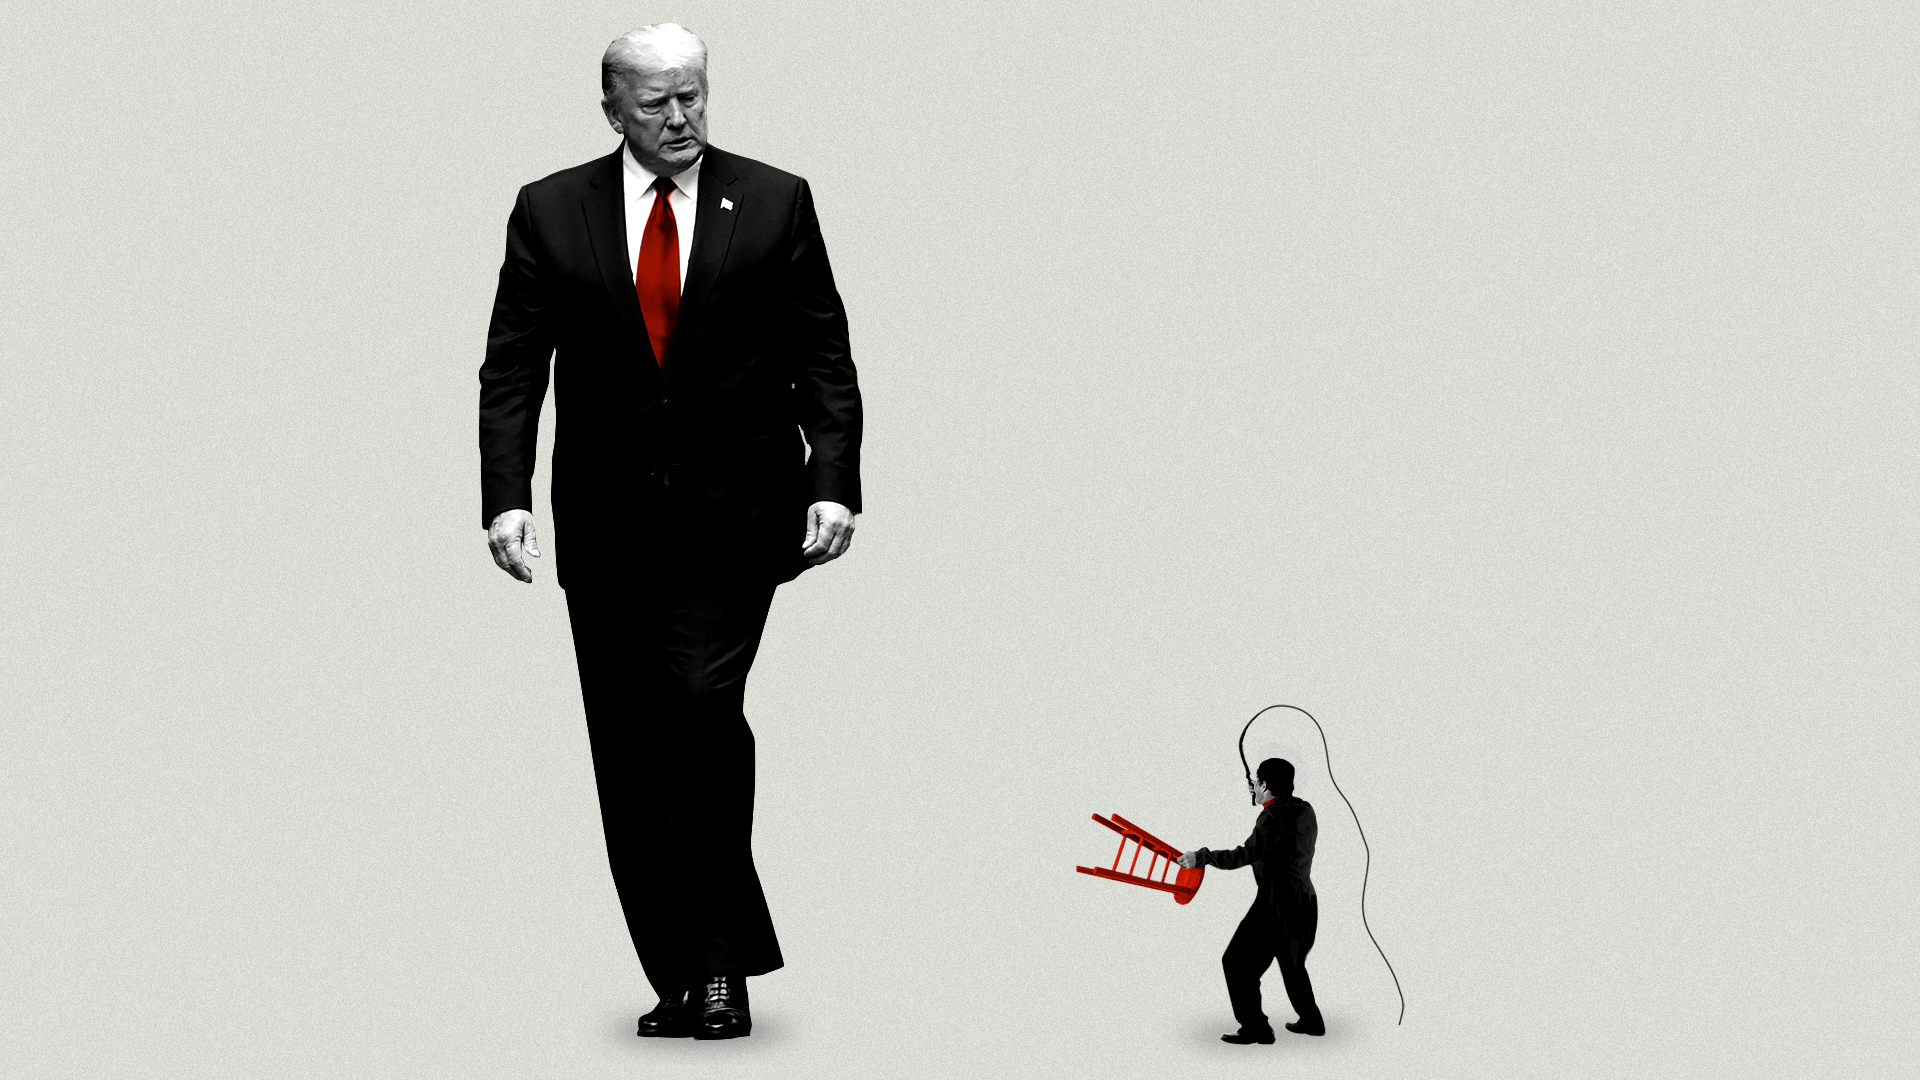 Illustration of President Trump looking down at a lion tamer in a business suit holding a stool and a whip.